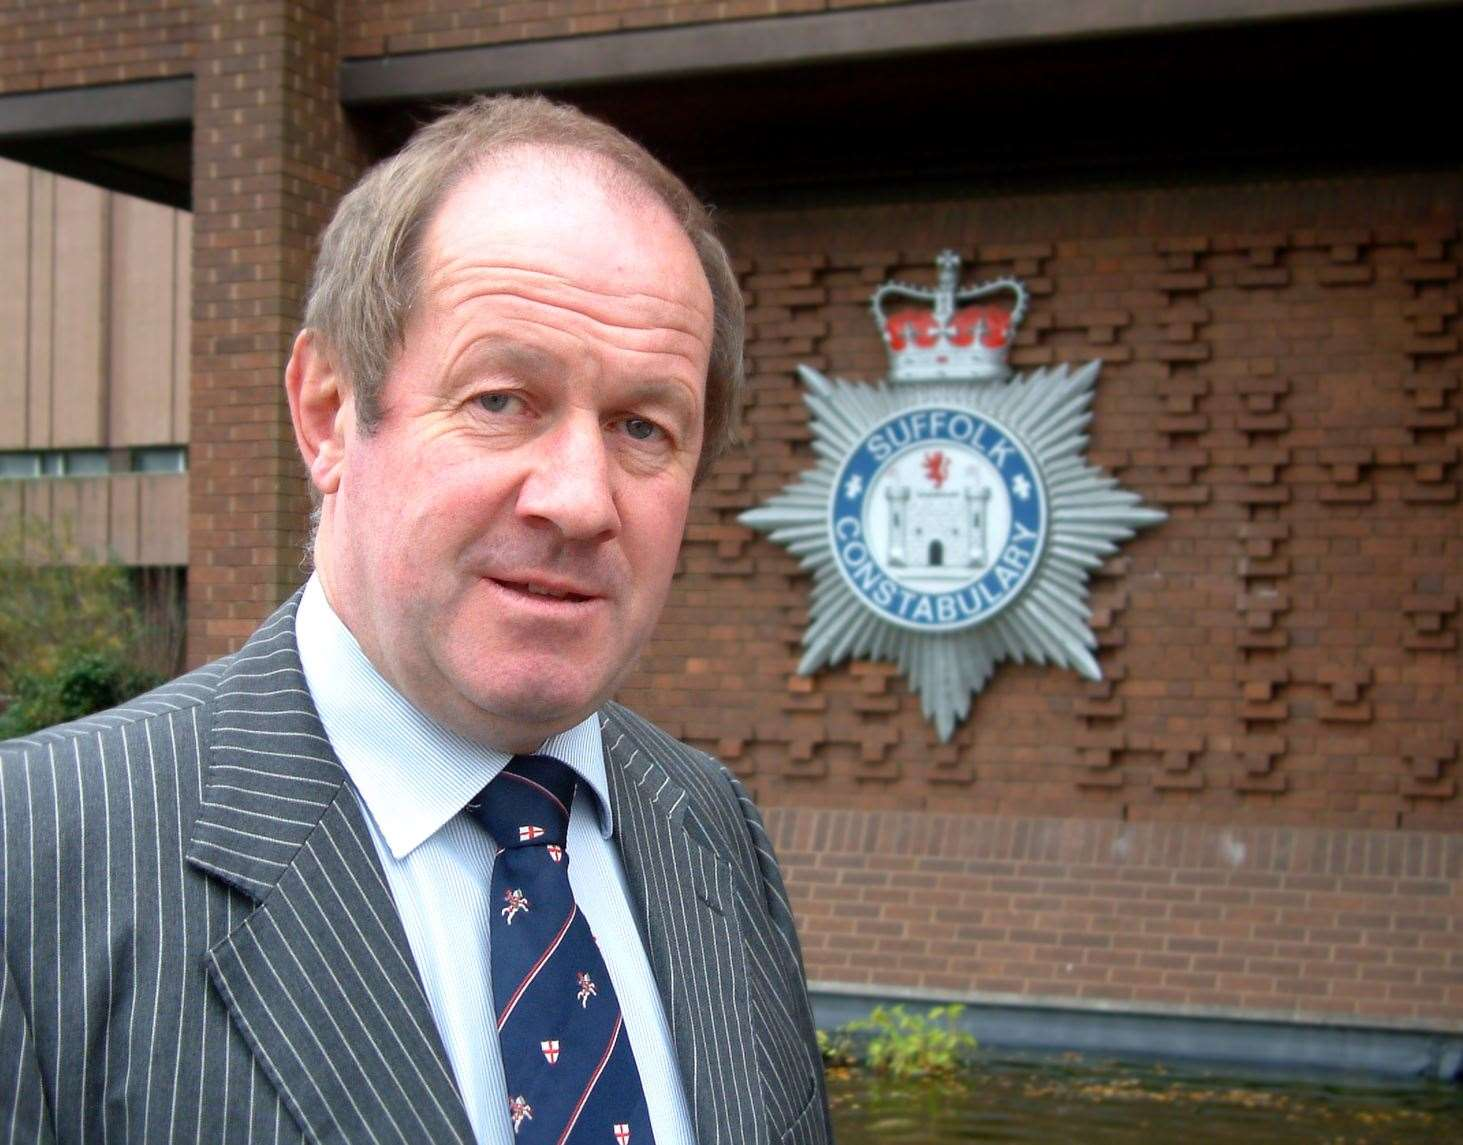 Tim Passmore, police and crime commissioner for Suffolk